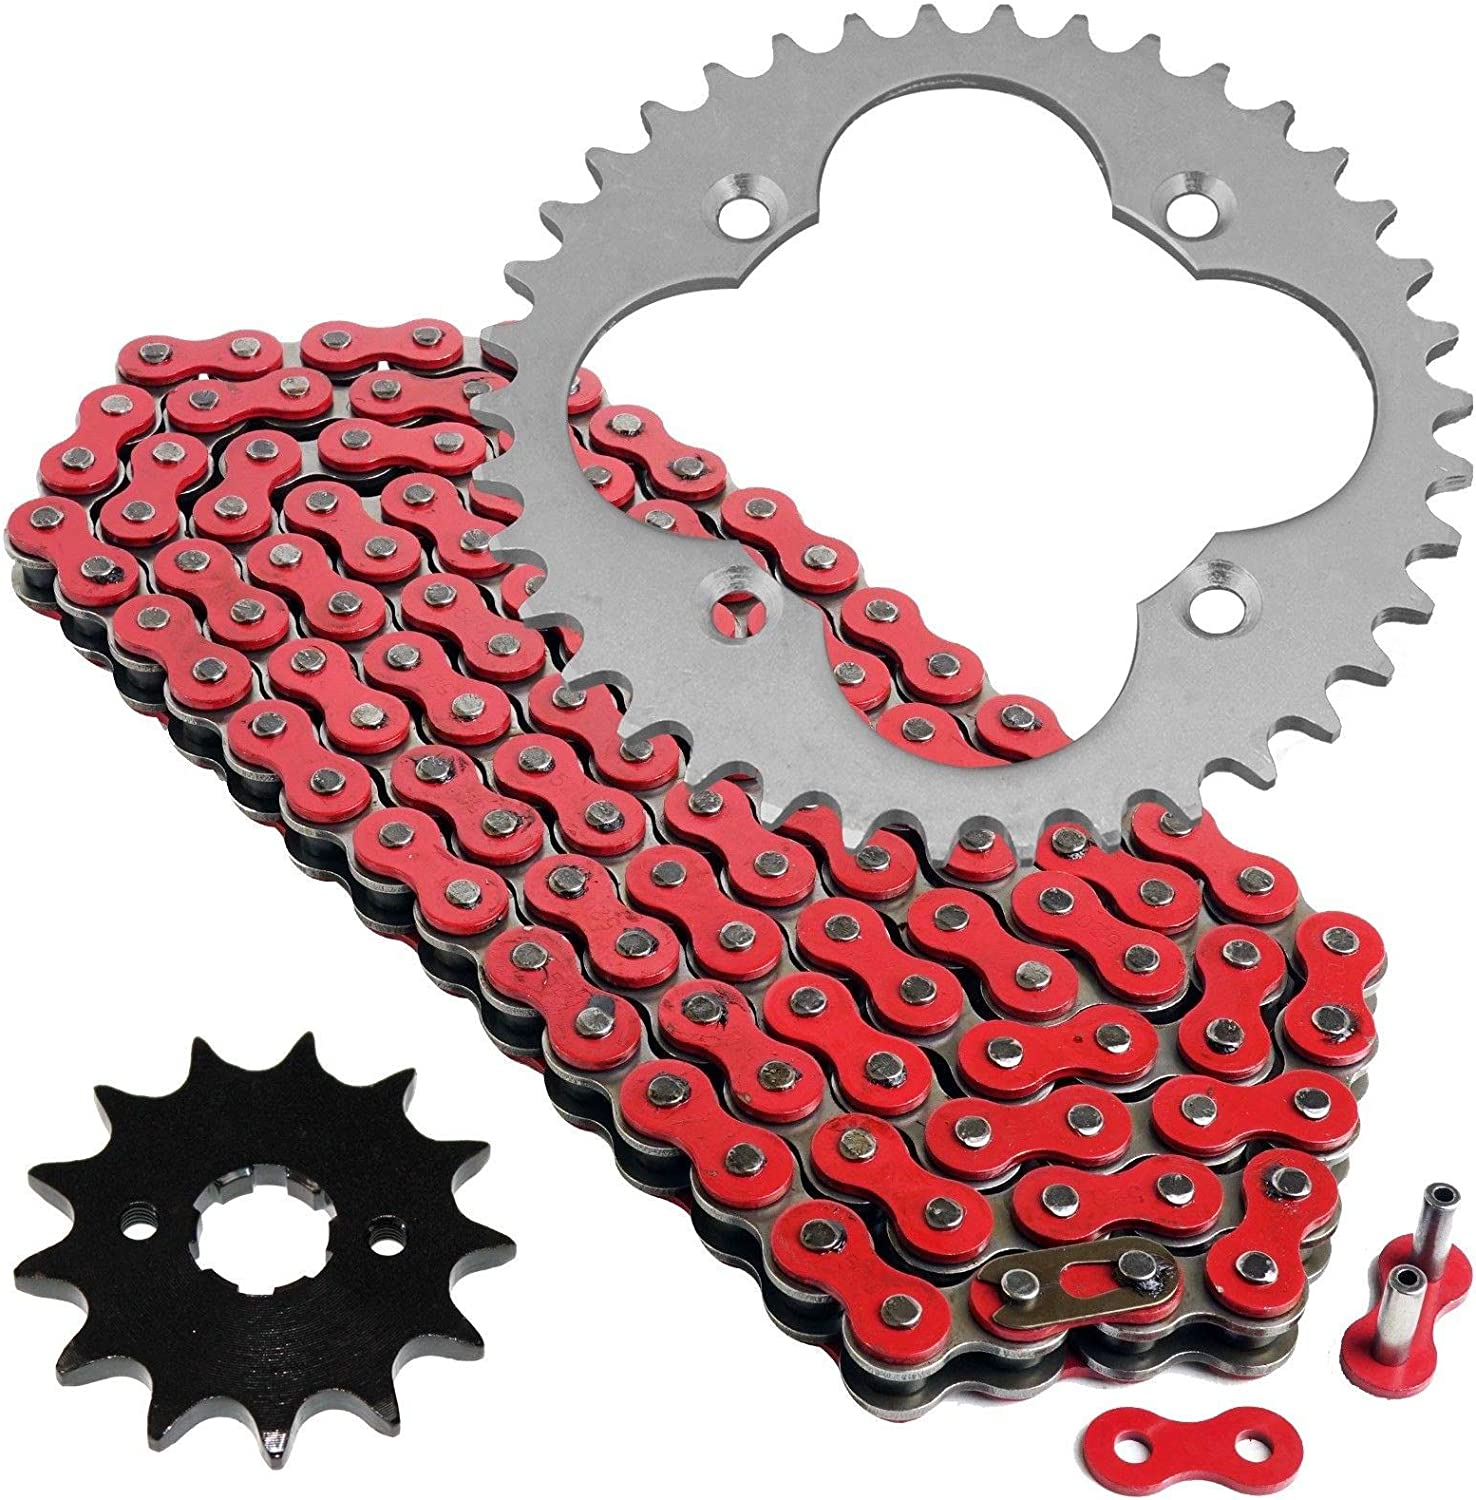 Caltric Red Drive Chain And Sprockets Kit Compatible With Honda Trx300Ex Trx300X Sportrax 300 2X4